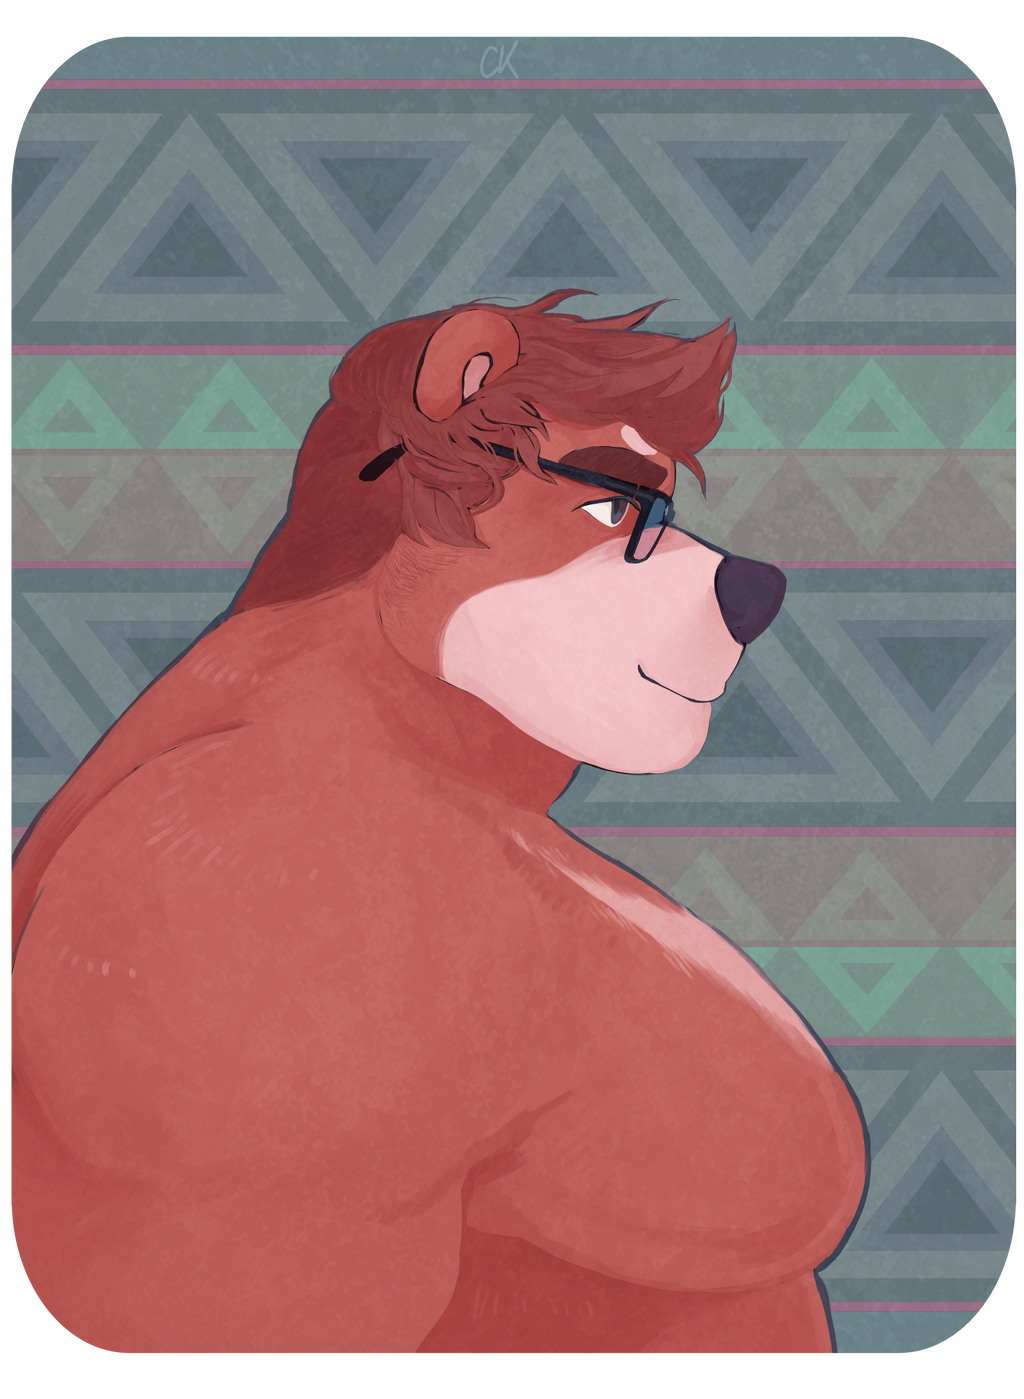 ChillyKuma-Kuma's Profile Picture